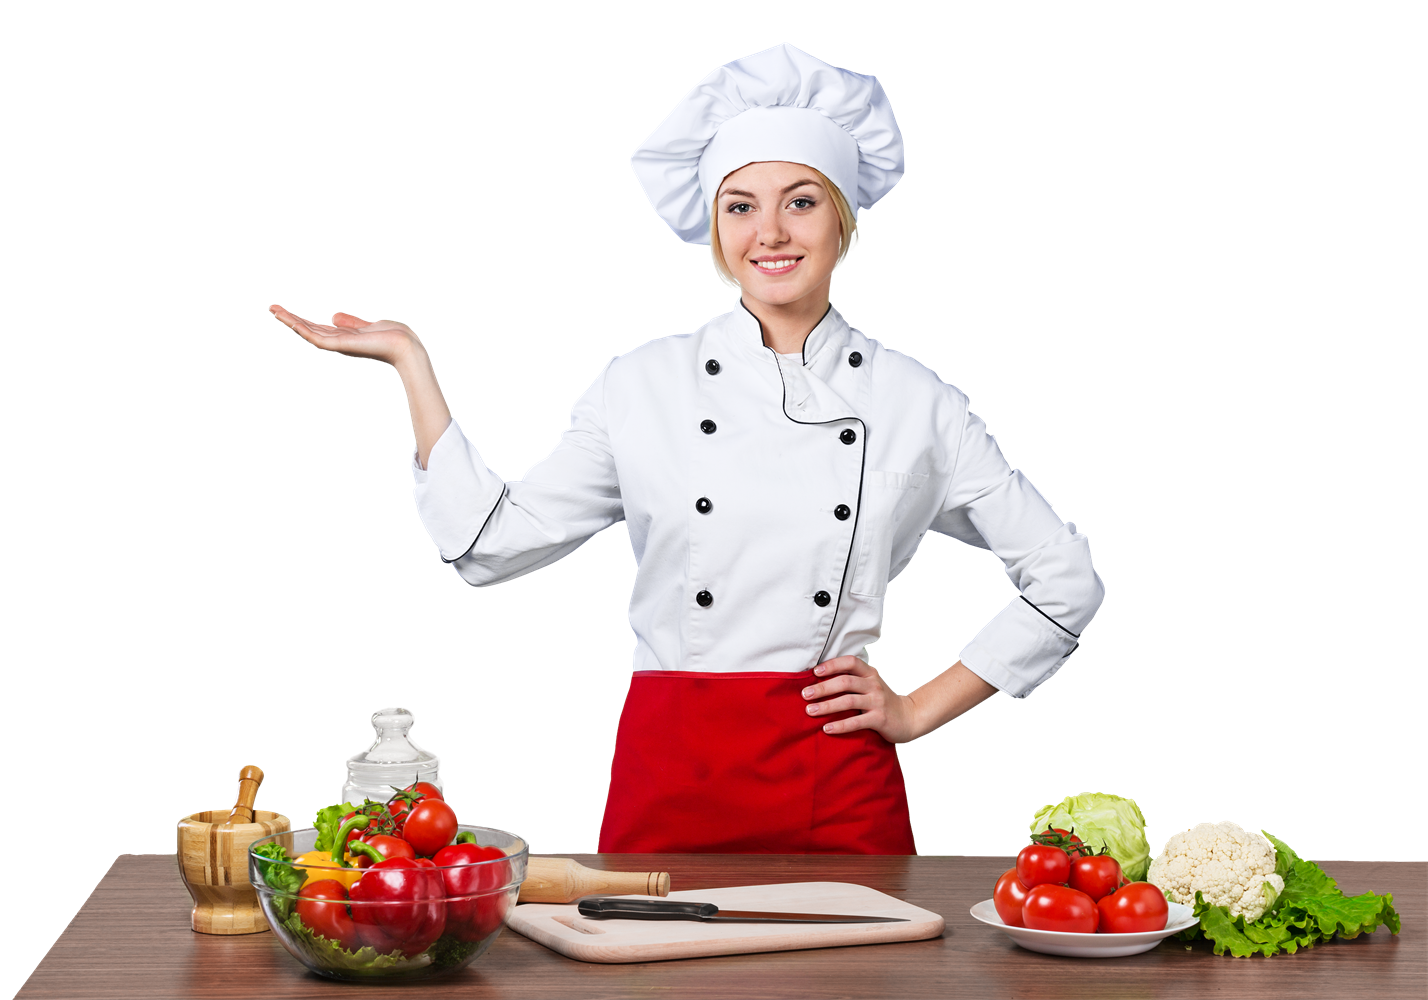 Chef cooking png. Image purepng free transparent